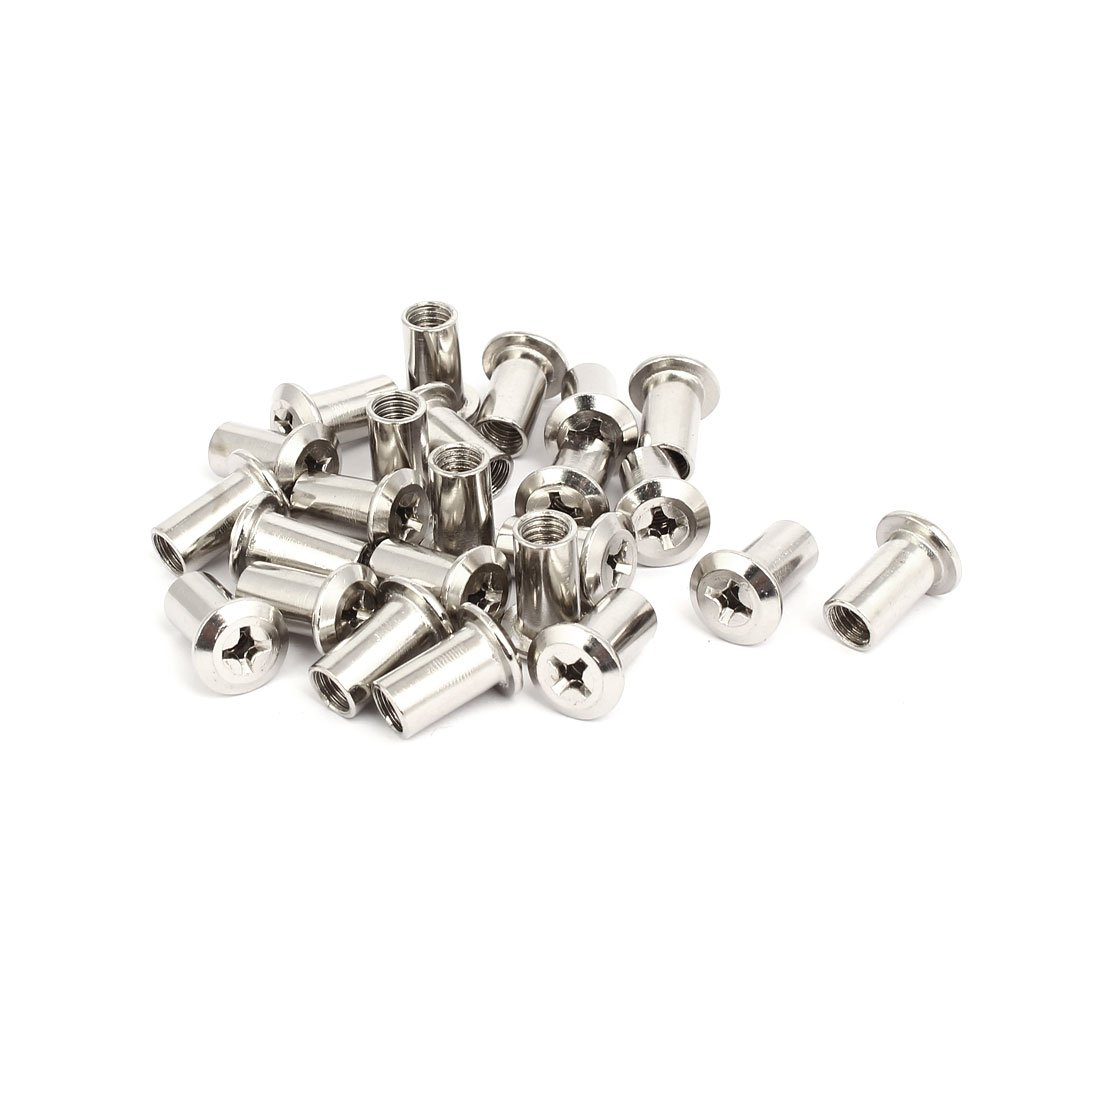 uxcell M8x18mm Female Thread Phillips Head Nut Furniture Fittings 24pcs